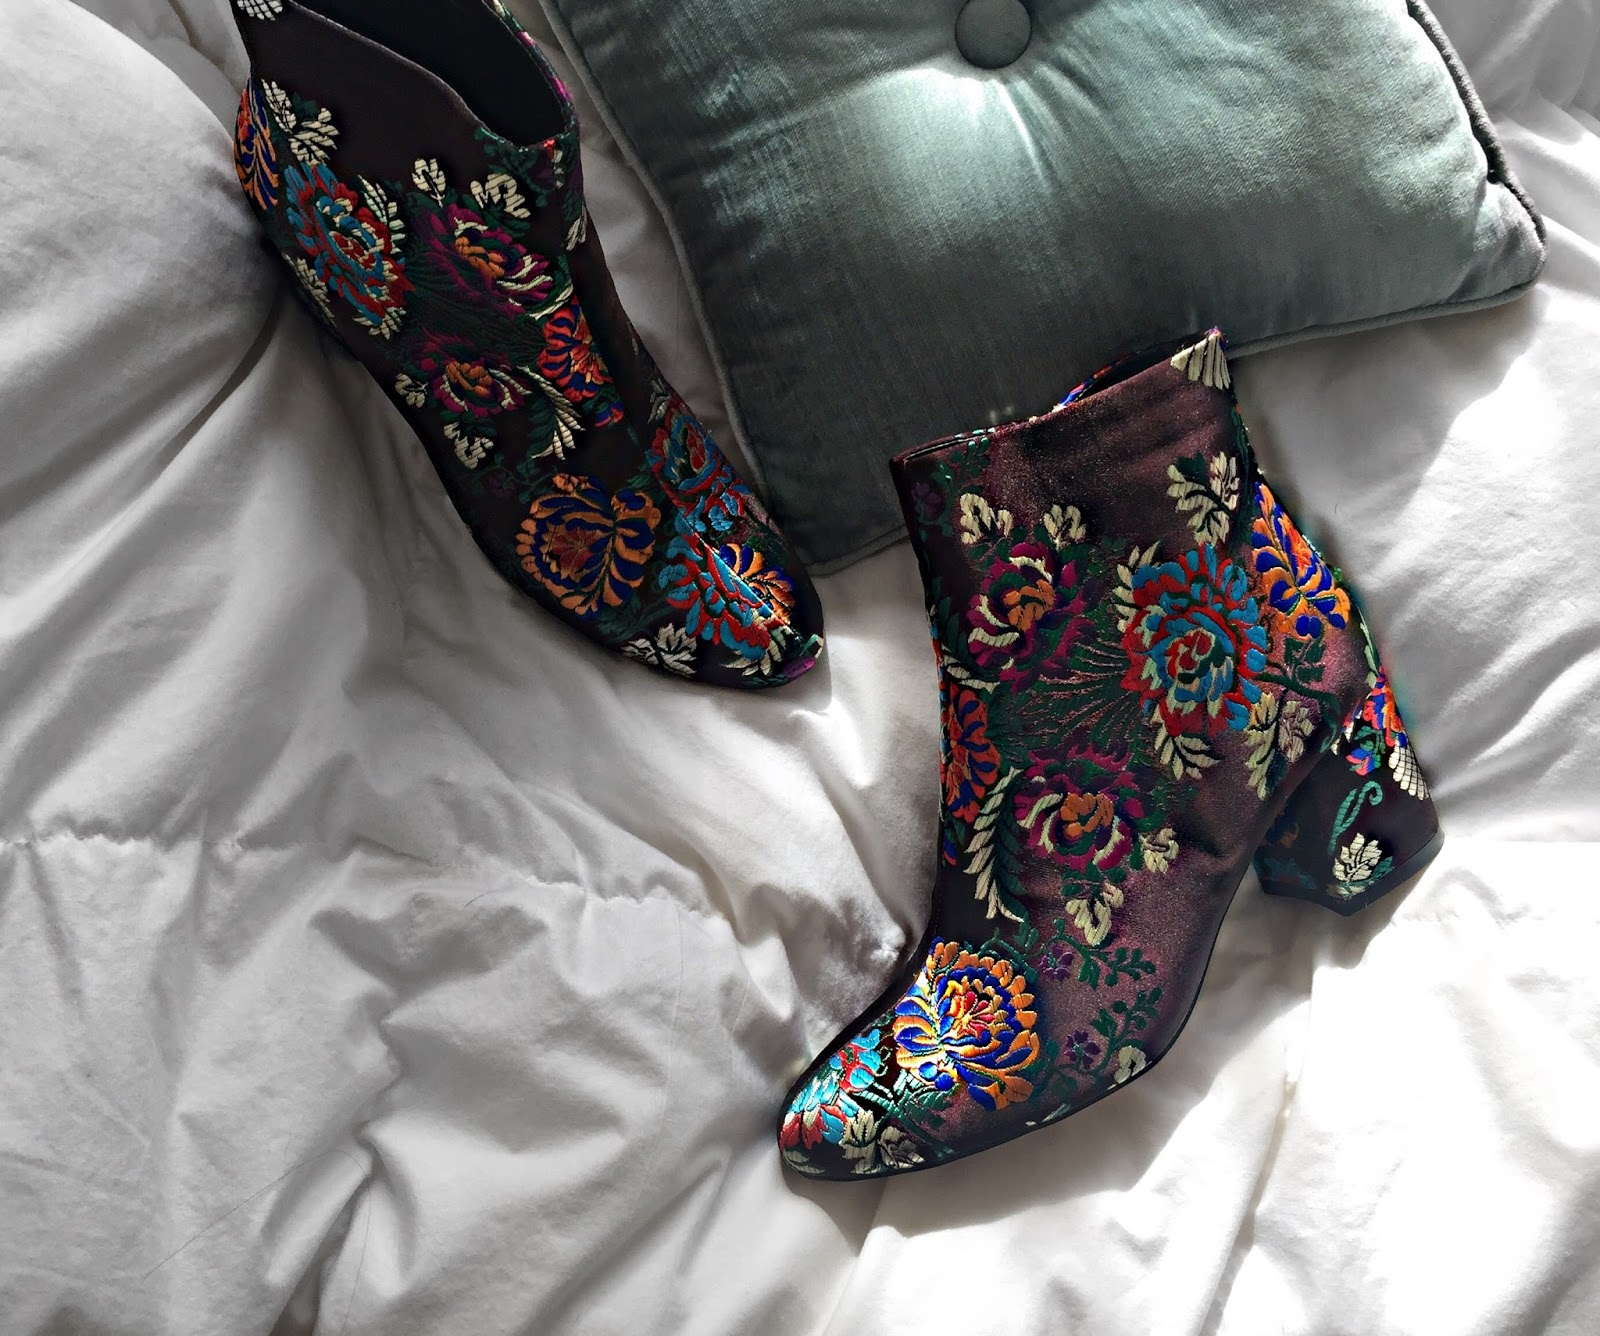 check out more on fierce floral booties with ego official